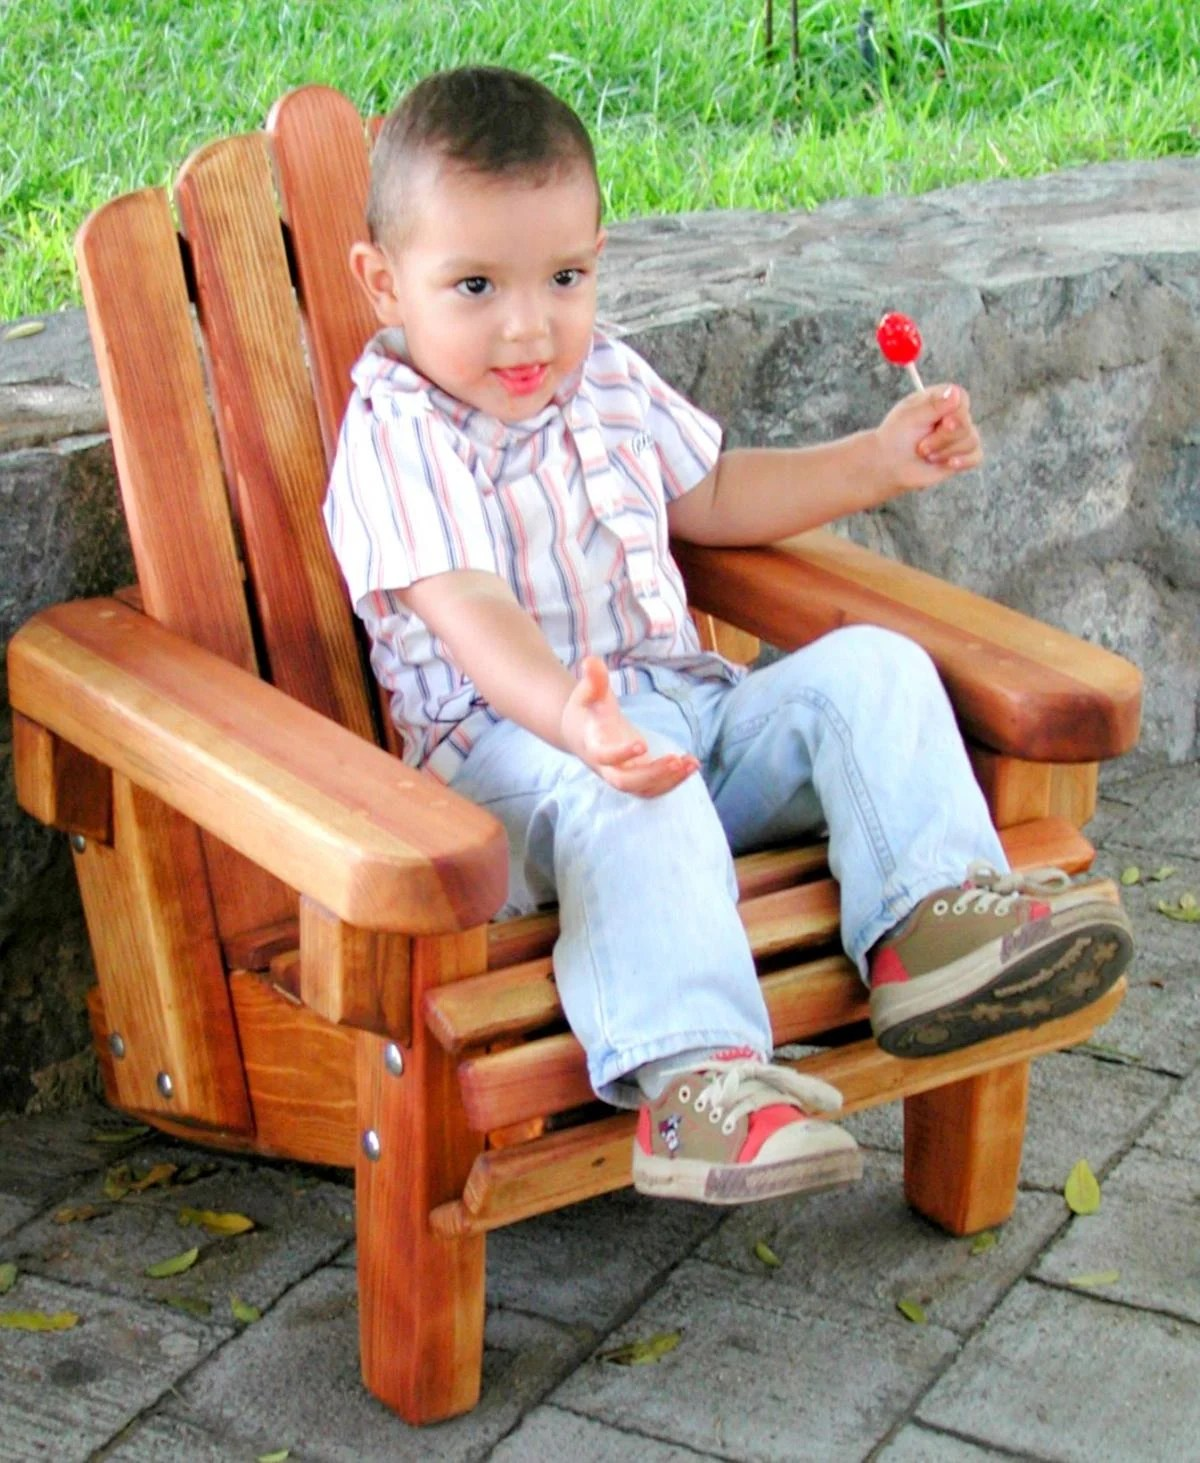 Kids Wooden Chair Kids Wooden Adirondack Chair Outdoor Wooden Chairs